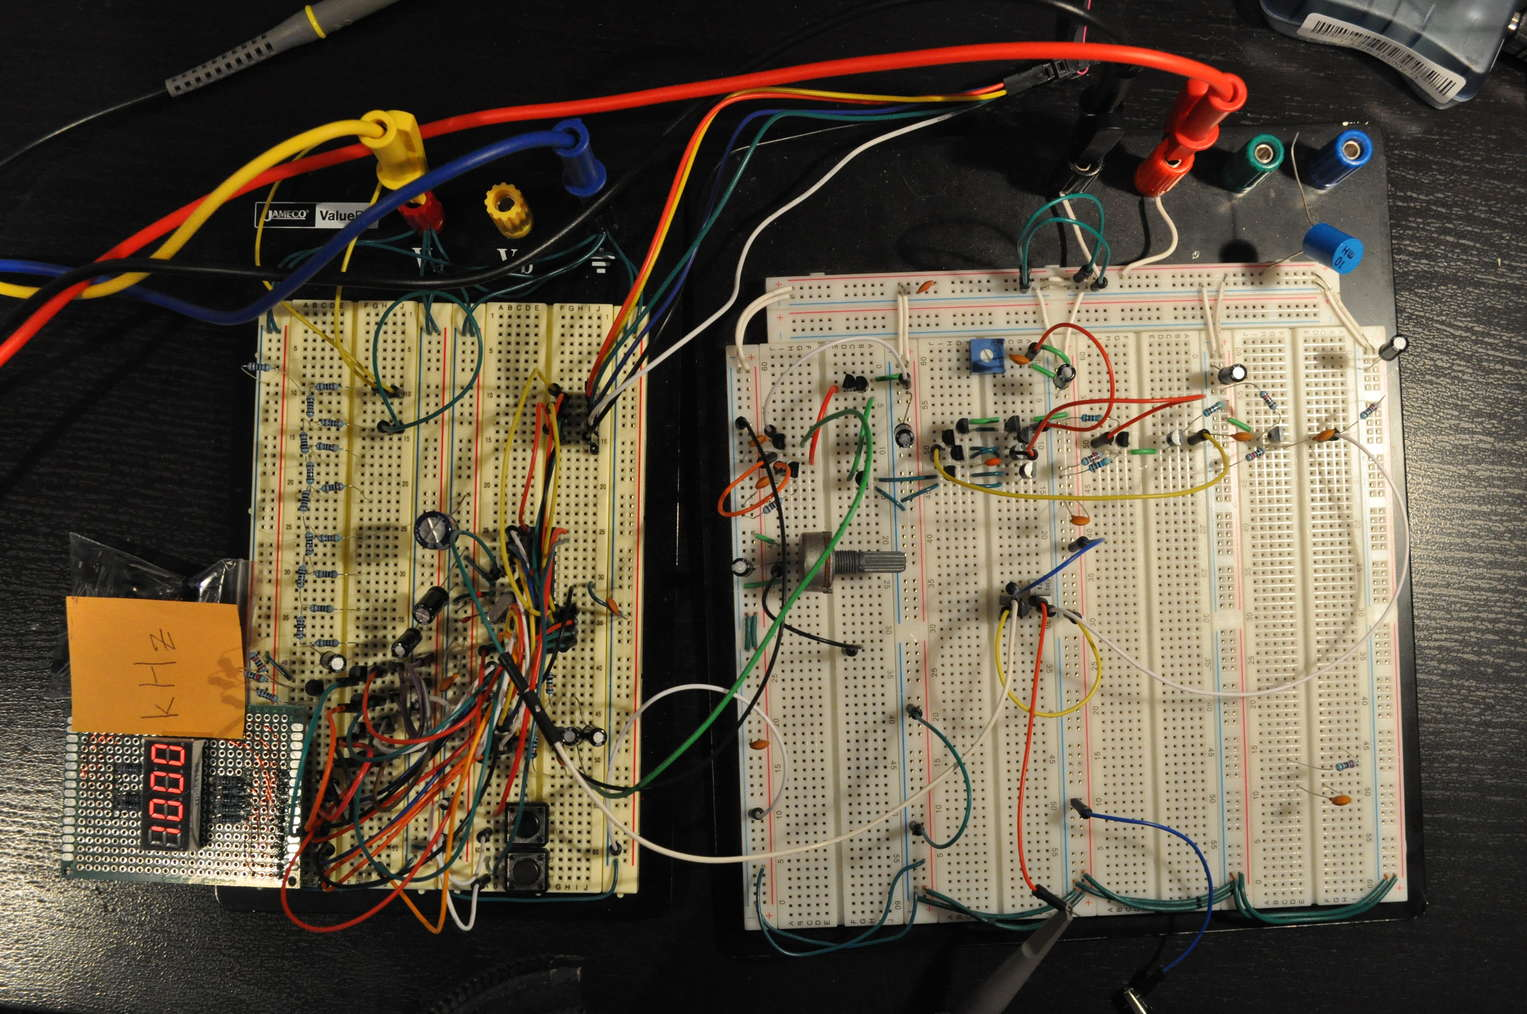 Synthesizer Breadbpard Diagram Electrical Wiring Diagrams Light2sound Ldr Synth Make A Software Defined Frequency